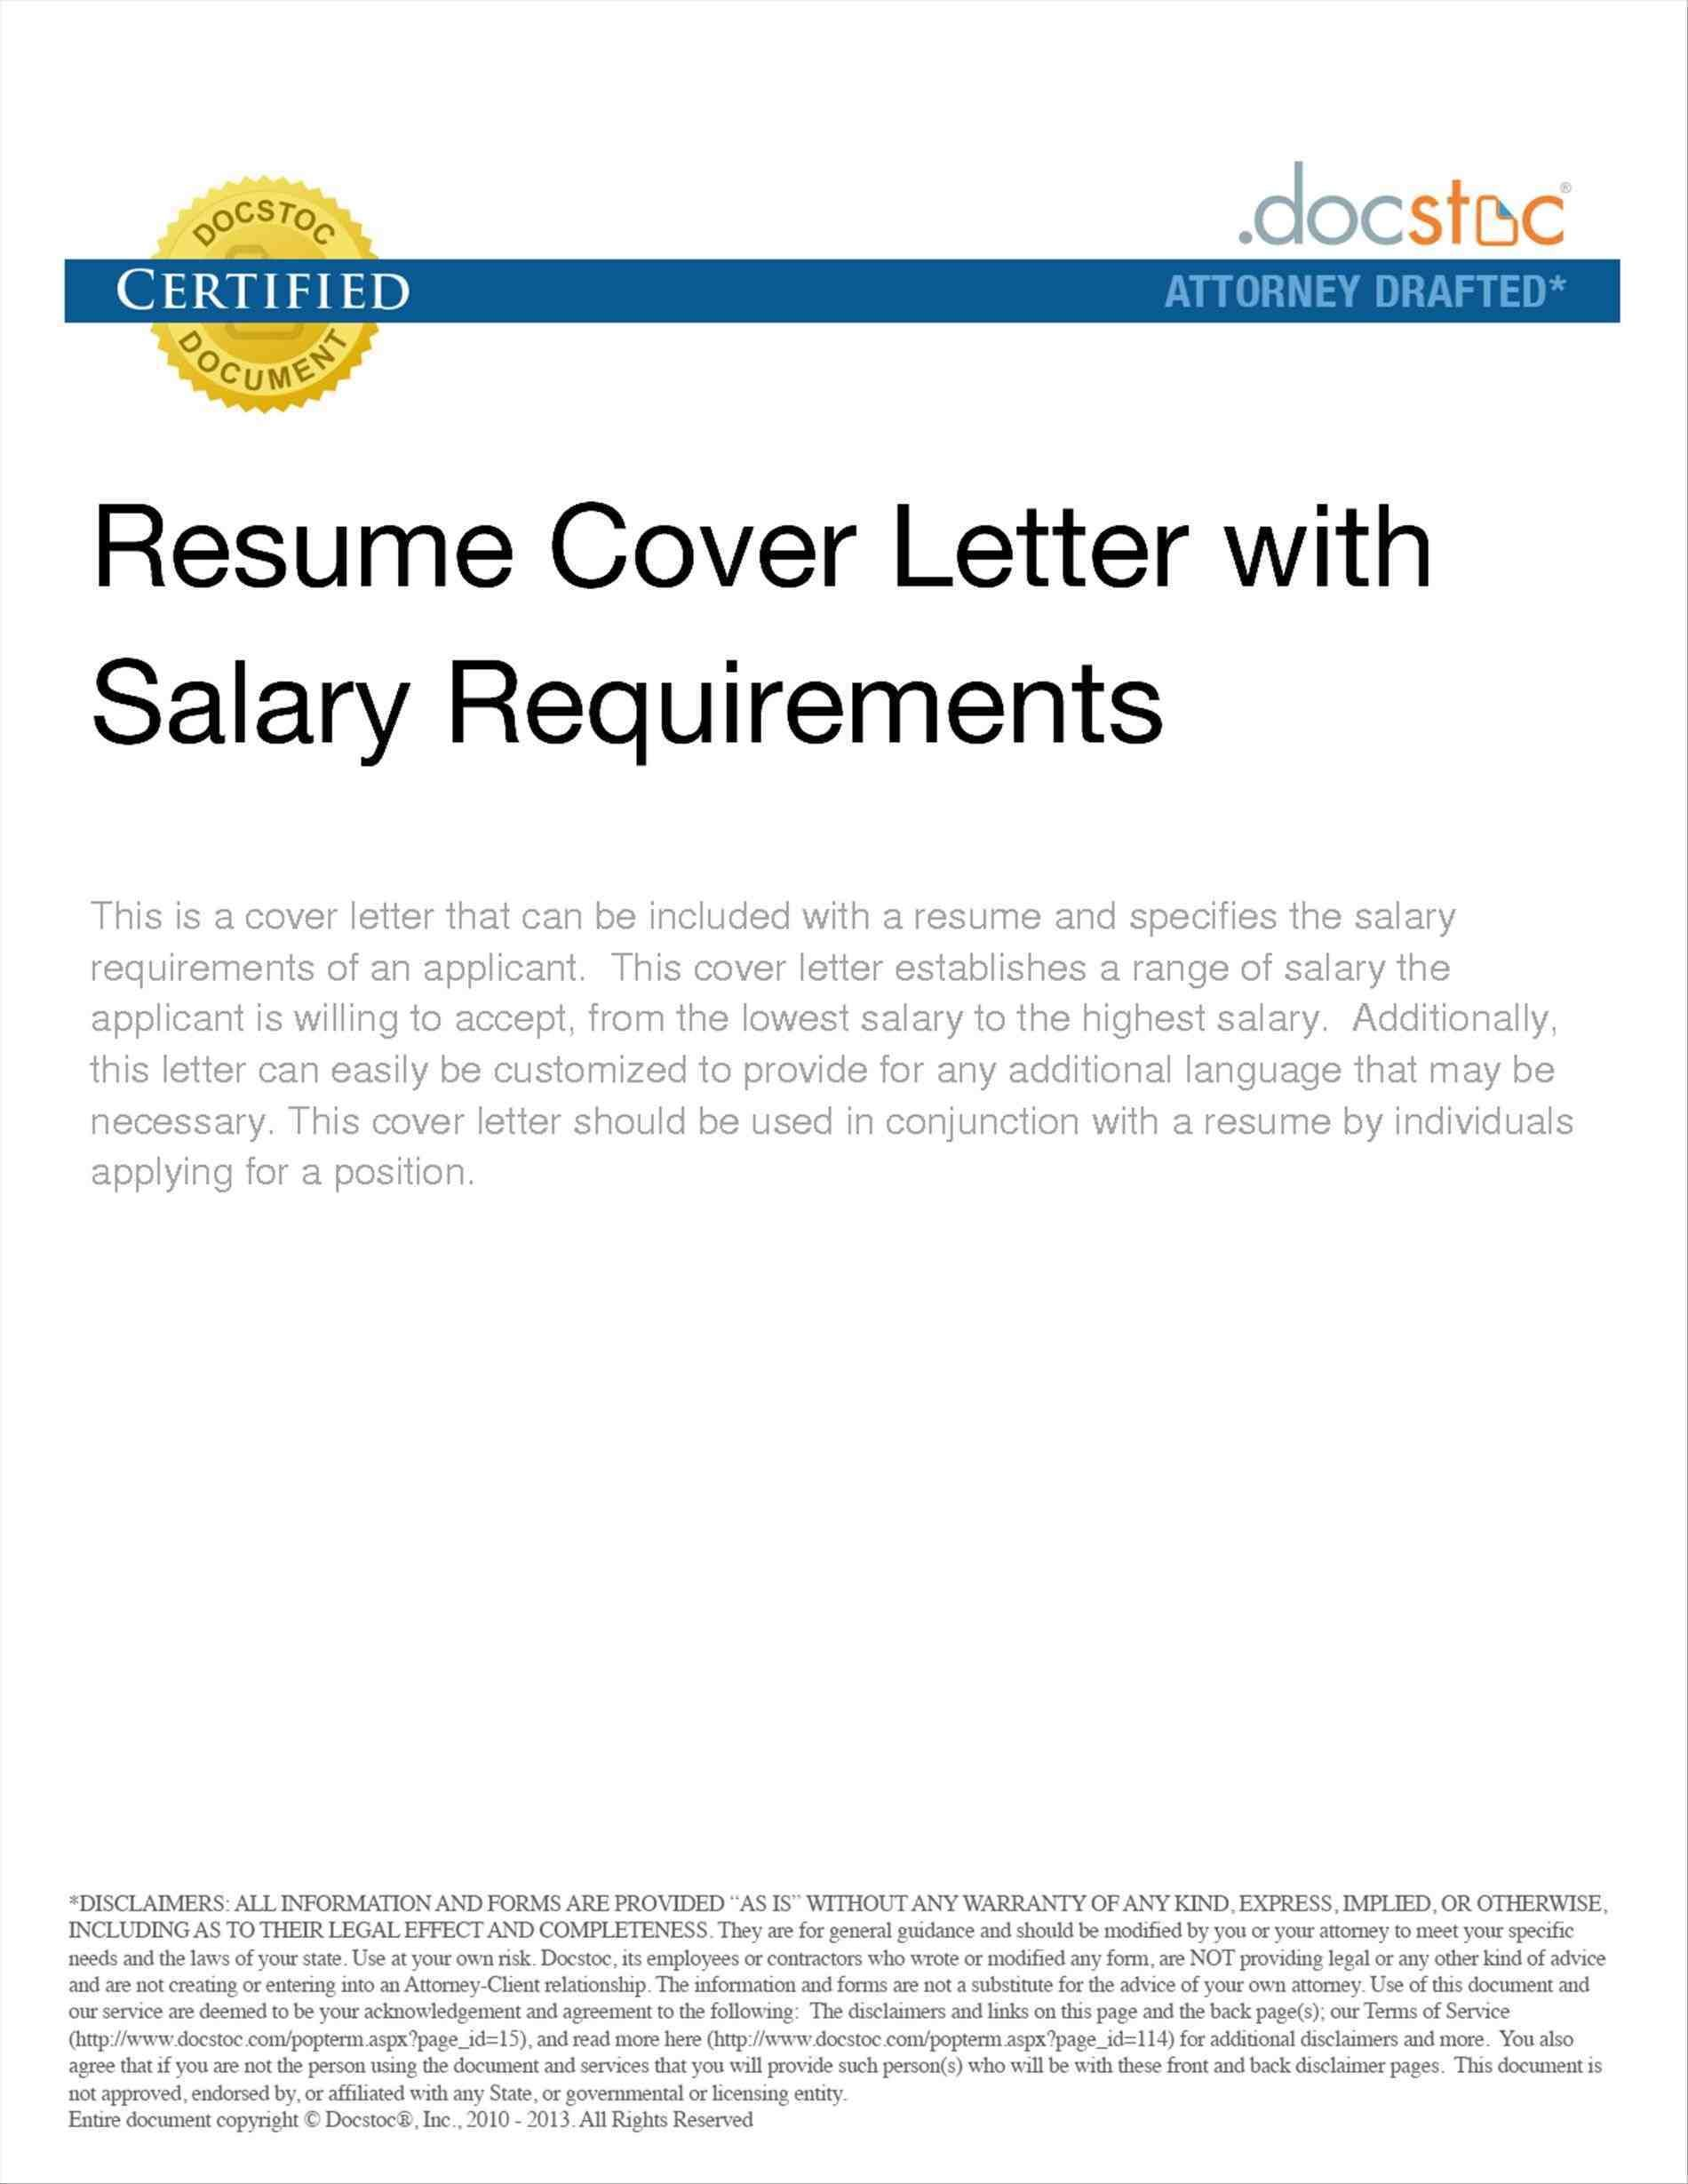 Executive Assistant Cover Letter With Salary Requirements Sample Resume History Example Good